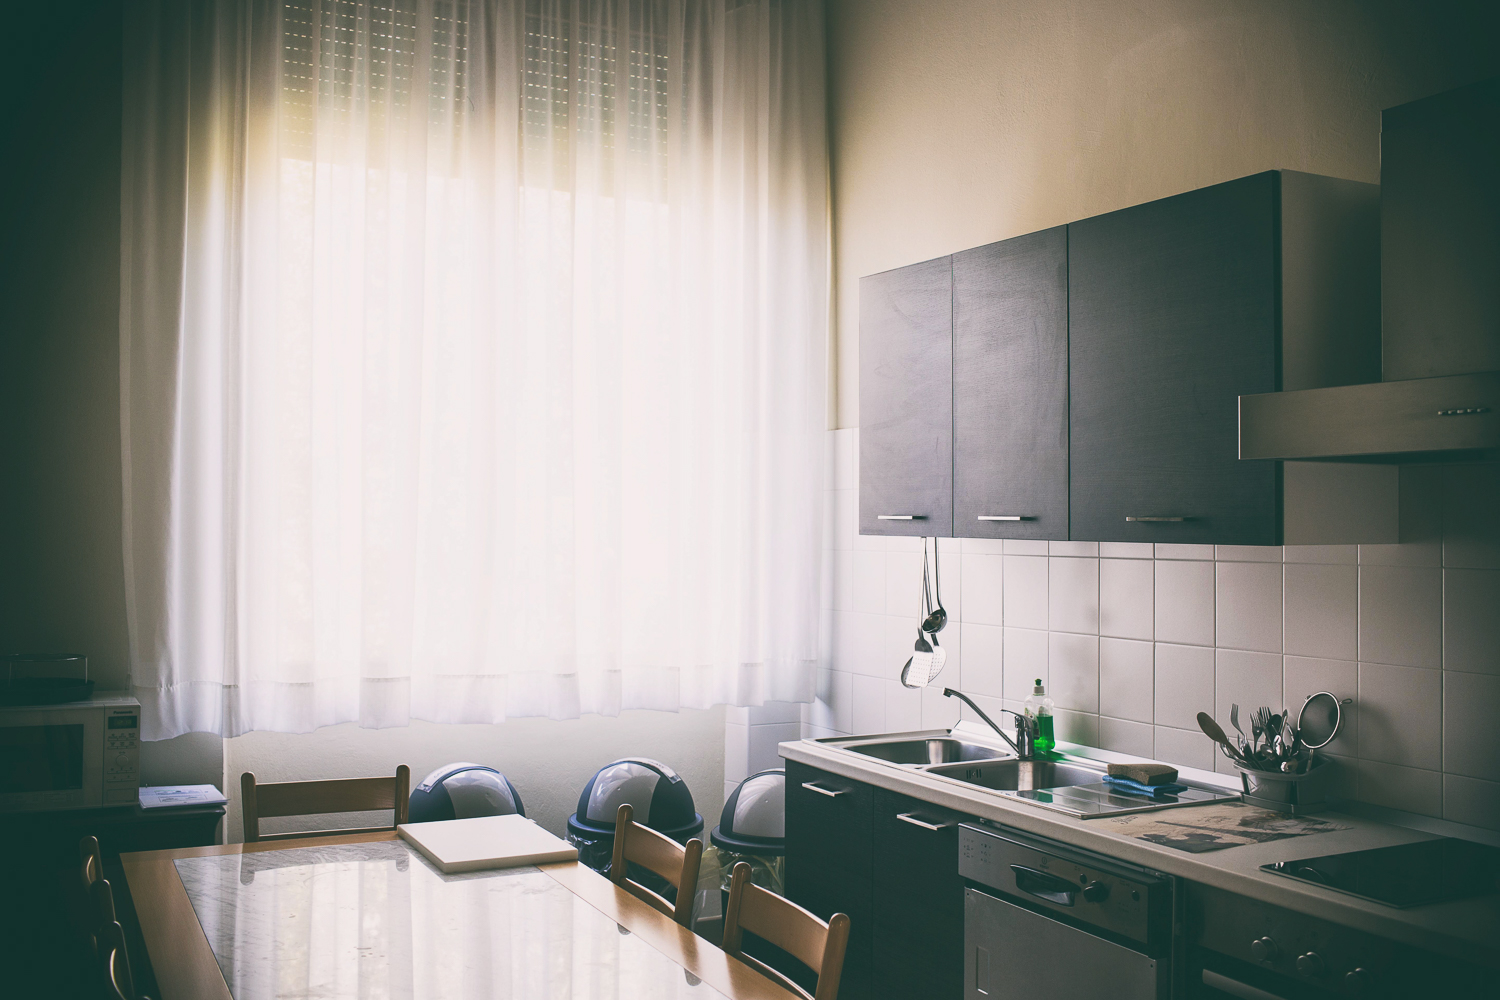 Student Accomodation for rent in single room in Piazza Buonarroti Michelangelo, 30, in Milano, Italy